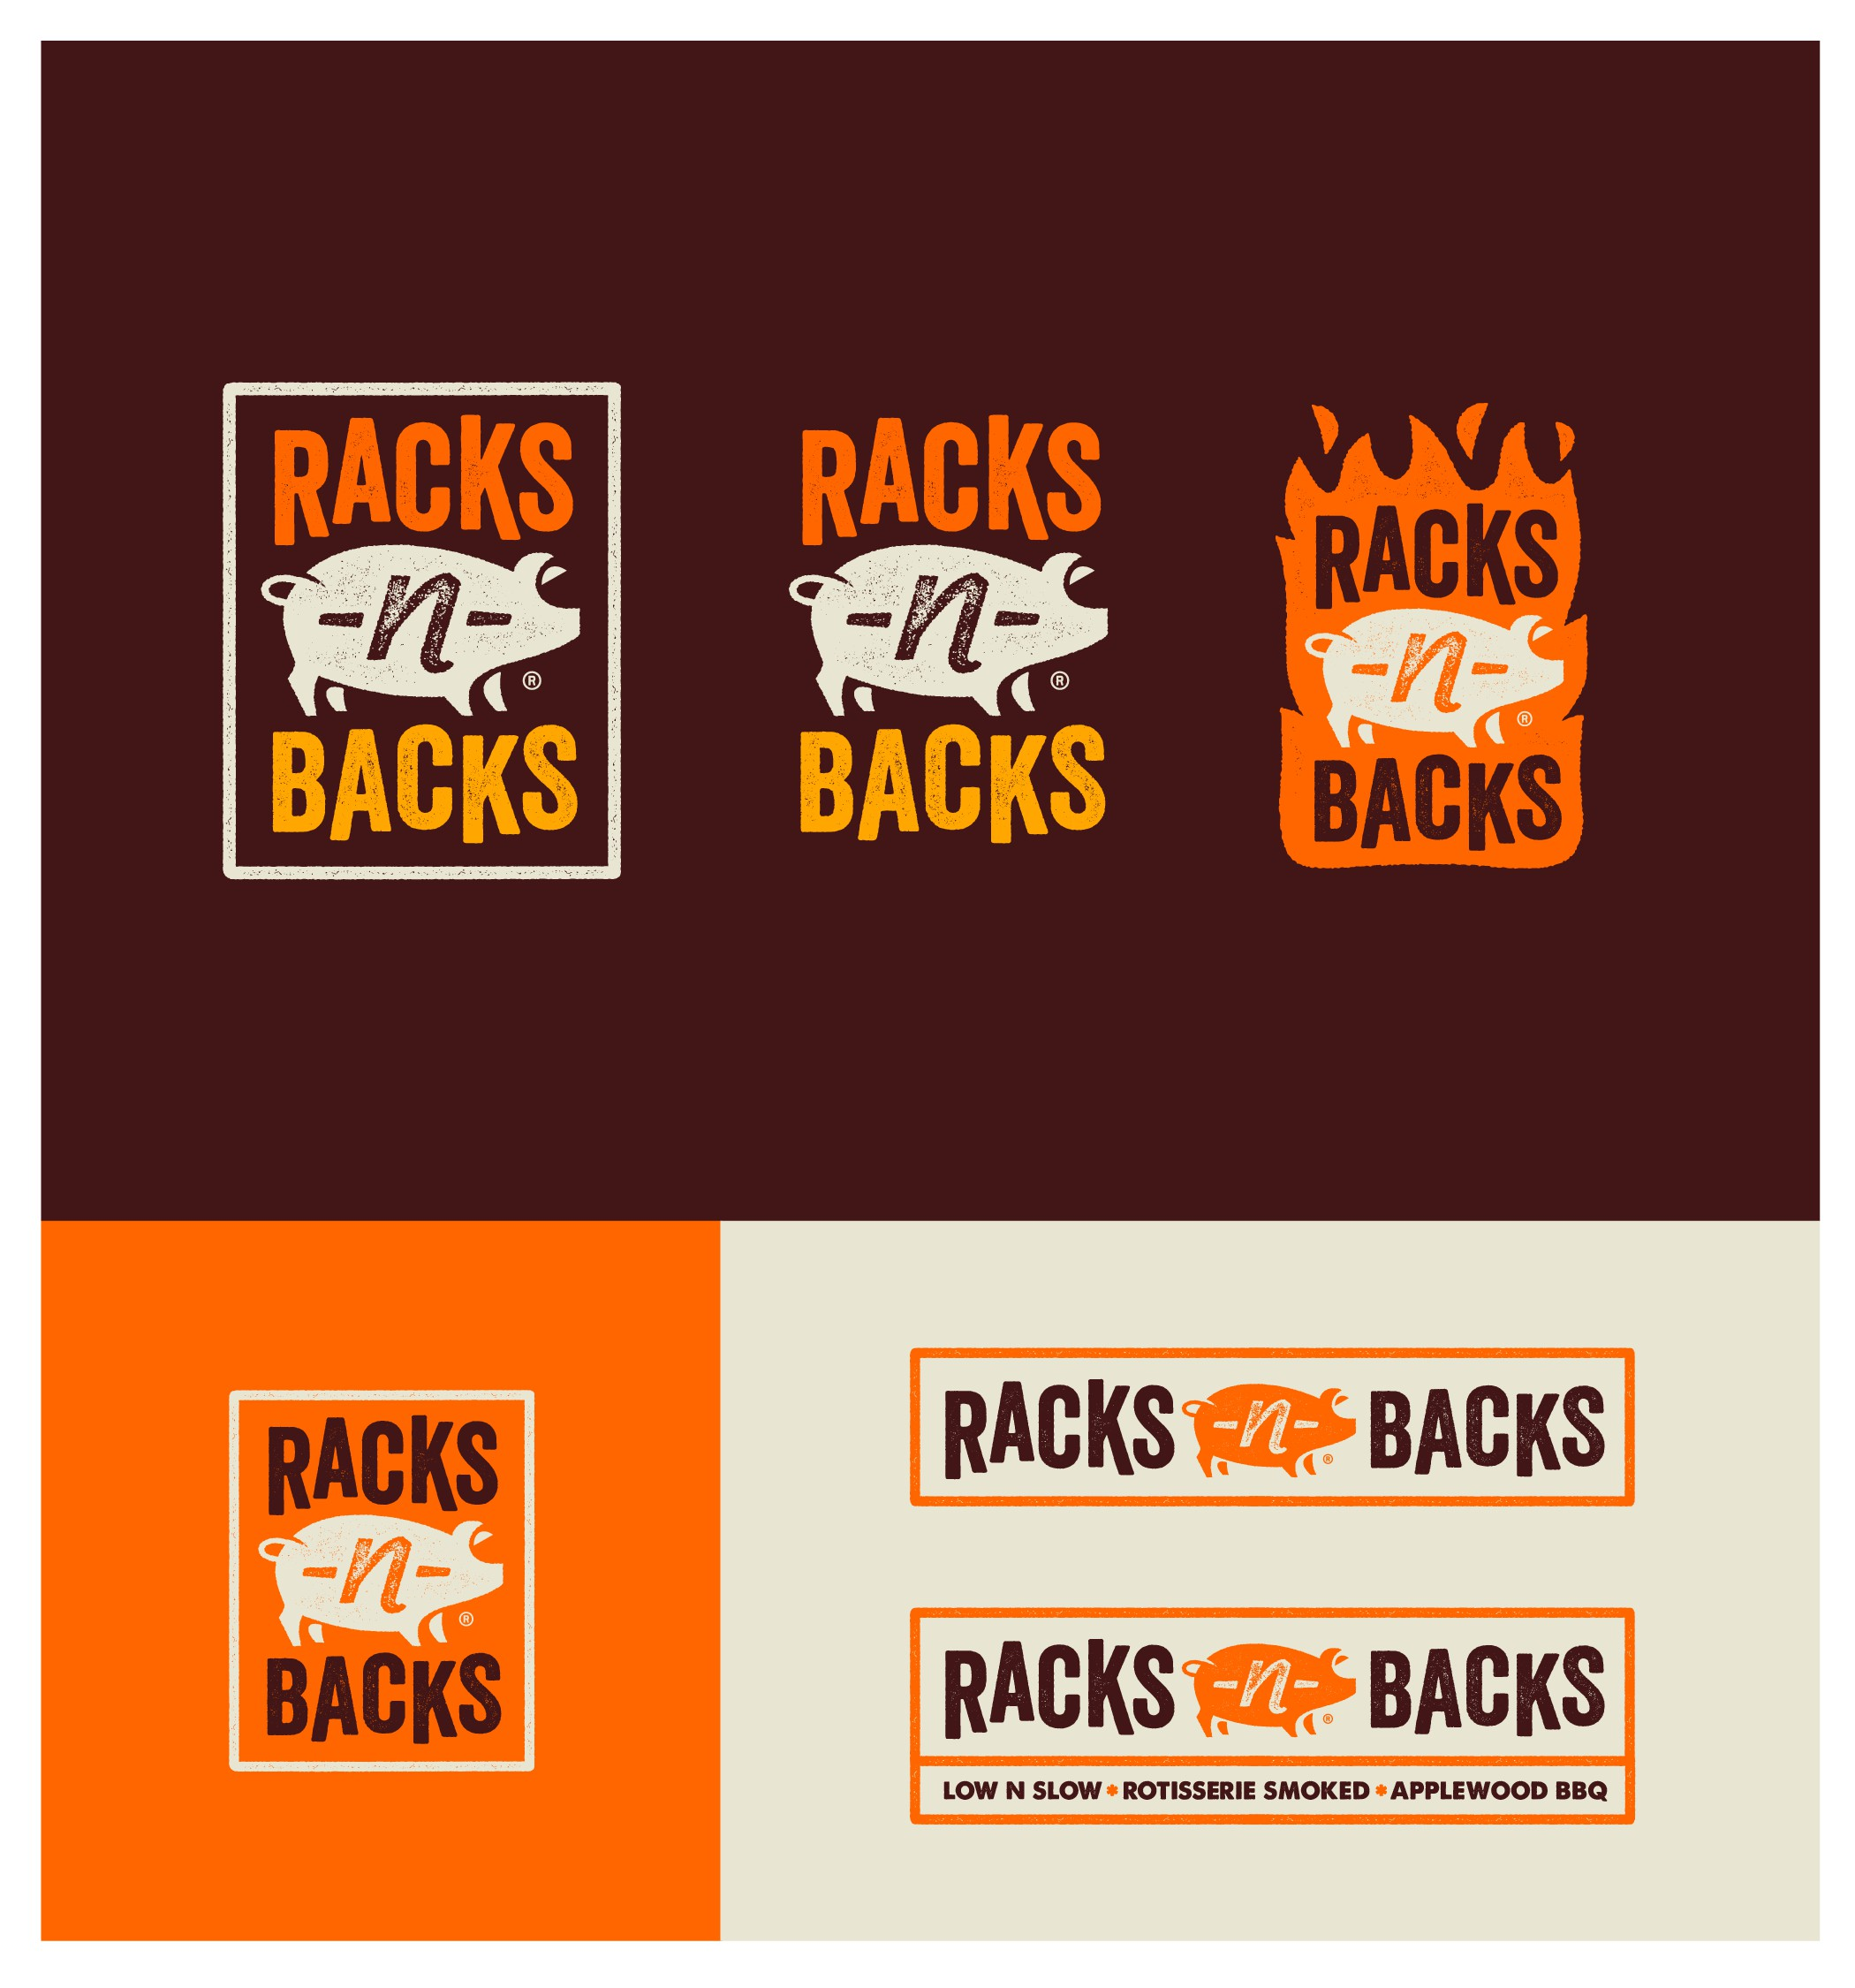 """Rustic, bold and totally creative logo designs needed for BBQ Truck """"Racks N Backs"""""""